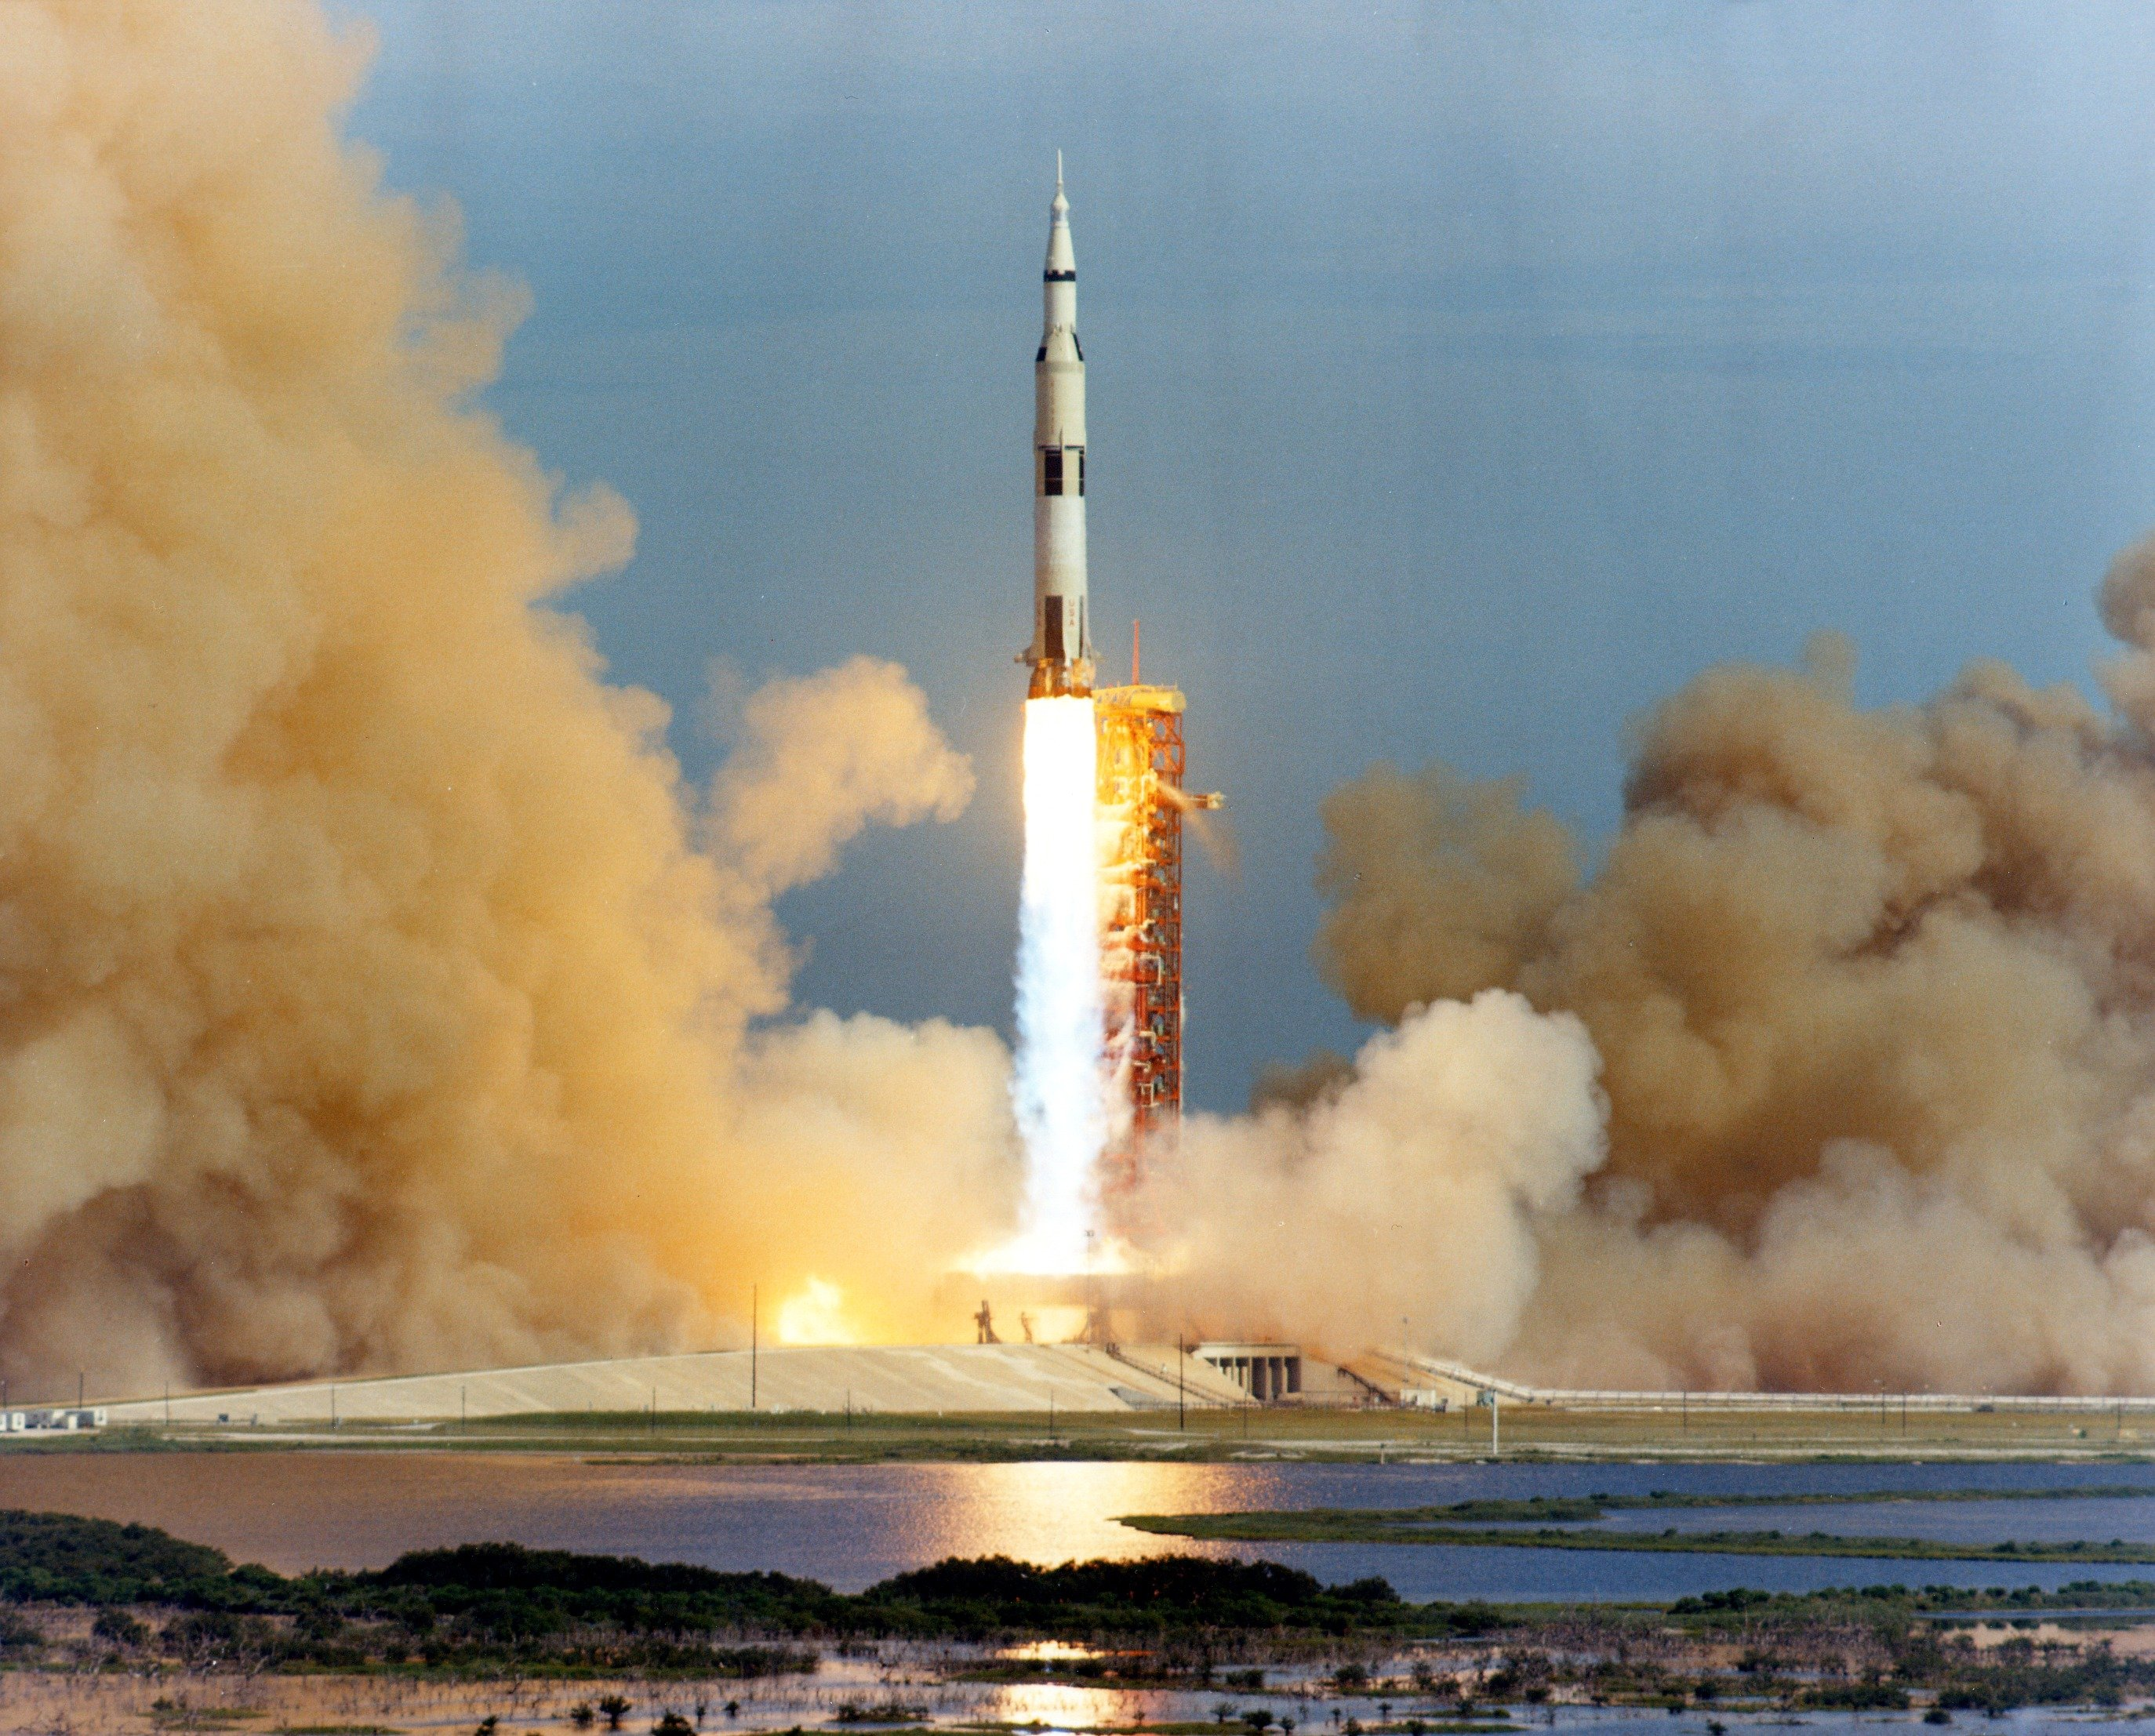 apollo 13 rocket launch - photo #3